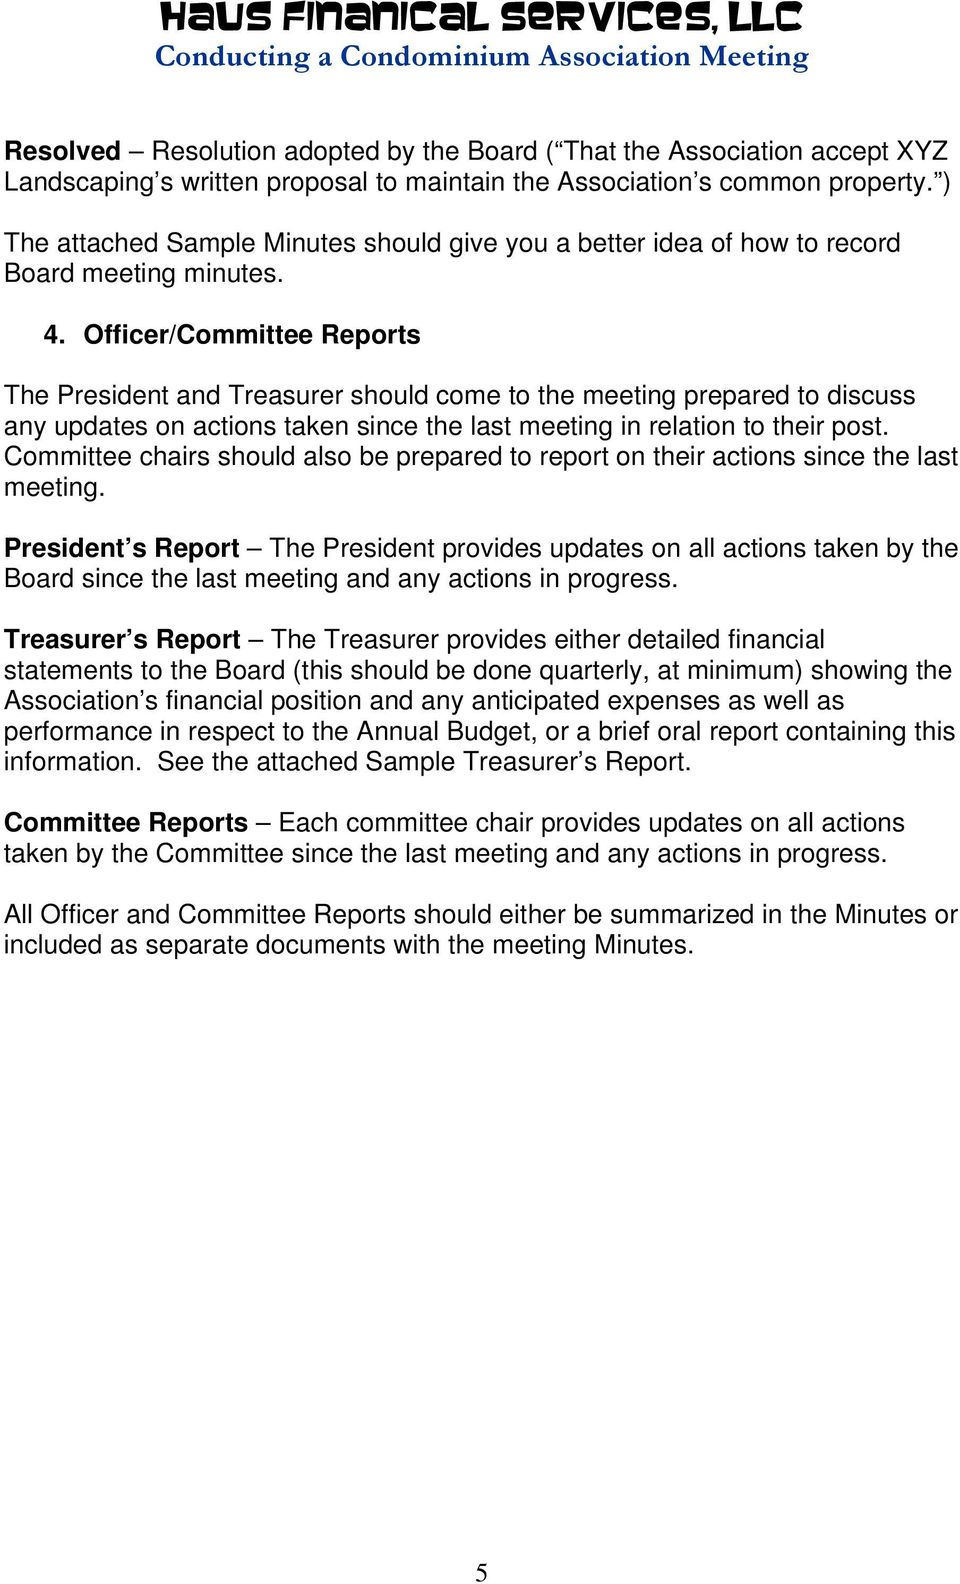 Officer/Committee Reports The President and Treasurer should come to the meeting prepared to discuss any updates on actions taken since the last meeting in relation to their post.